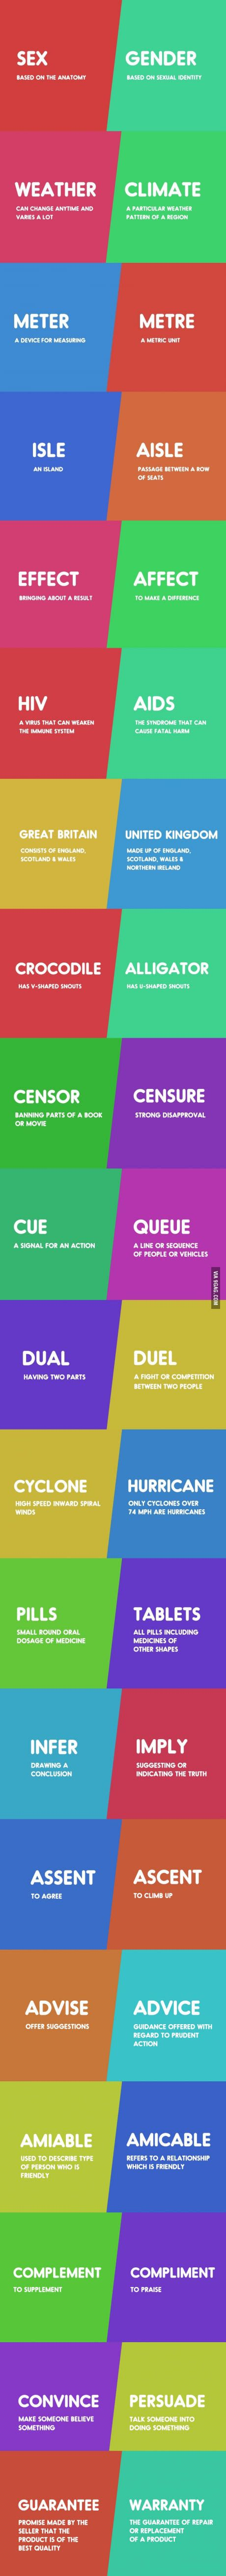 20 Sets Of Words Which Sound Similar But Have Different Meanings is part of English vocabulary - More memes, funny videos and pics on 9GAG